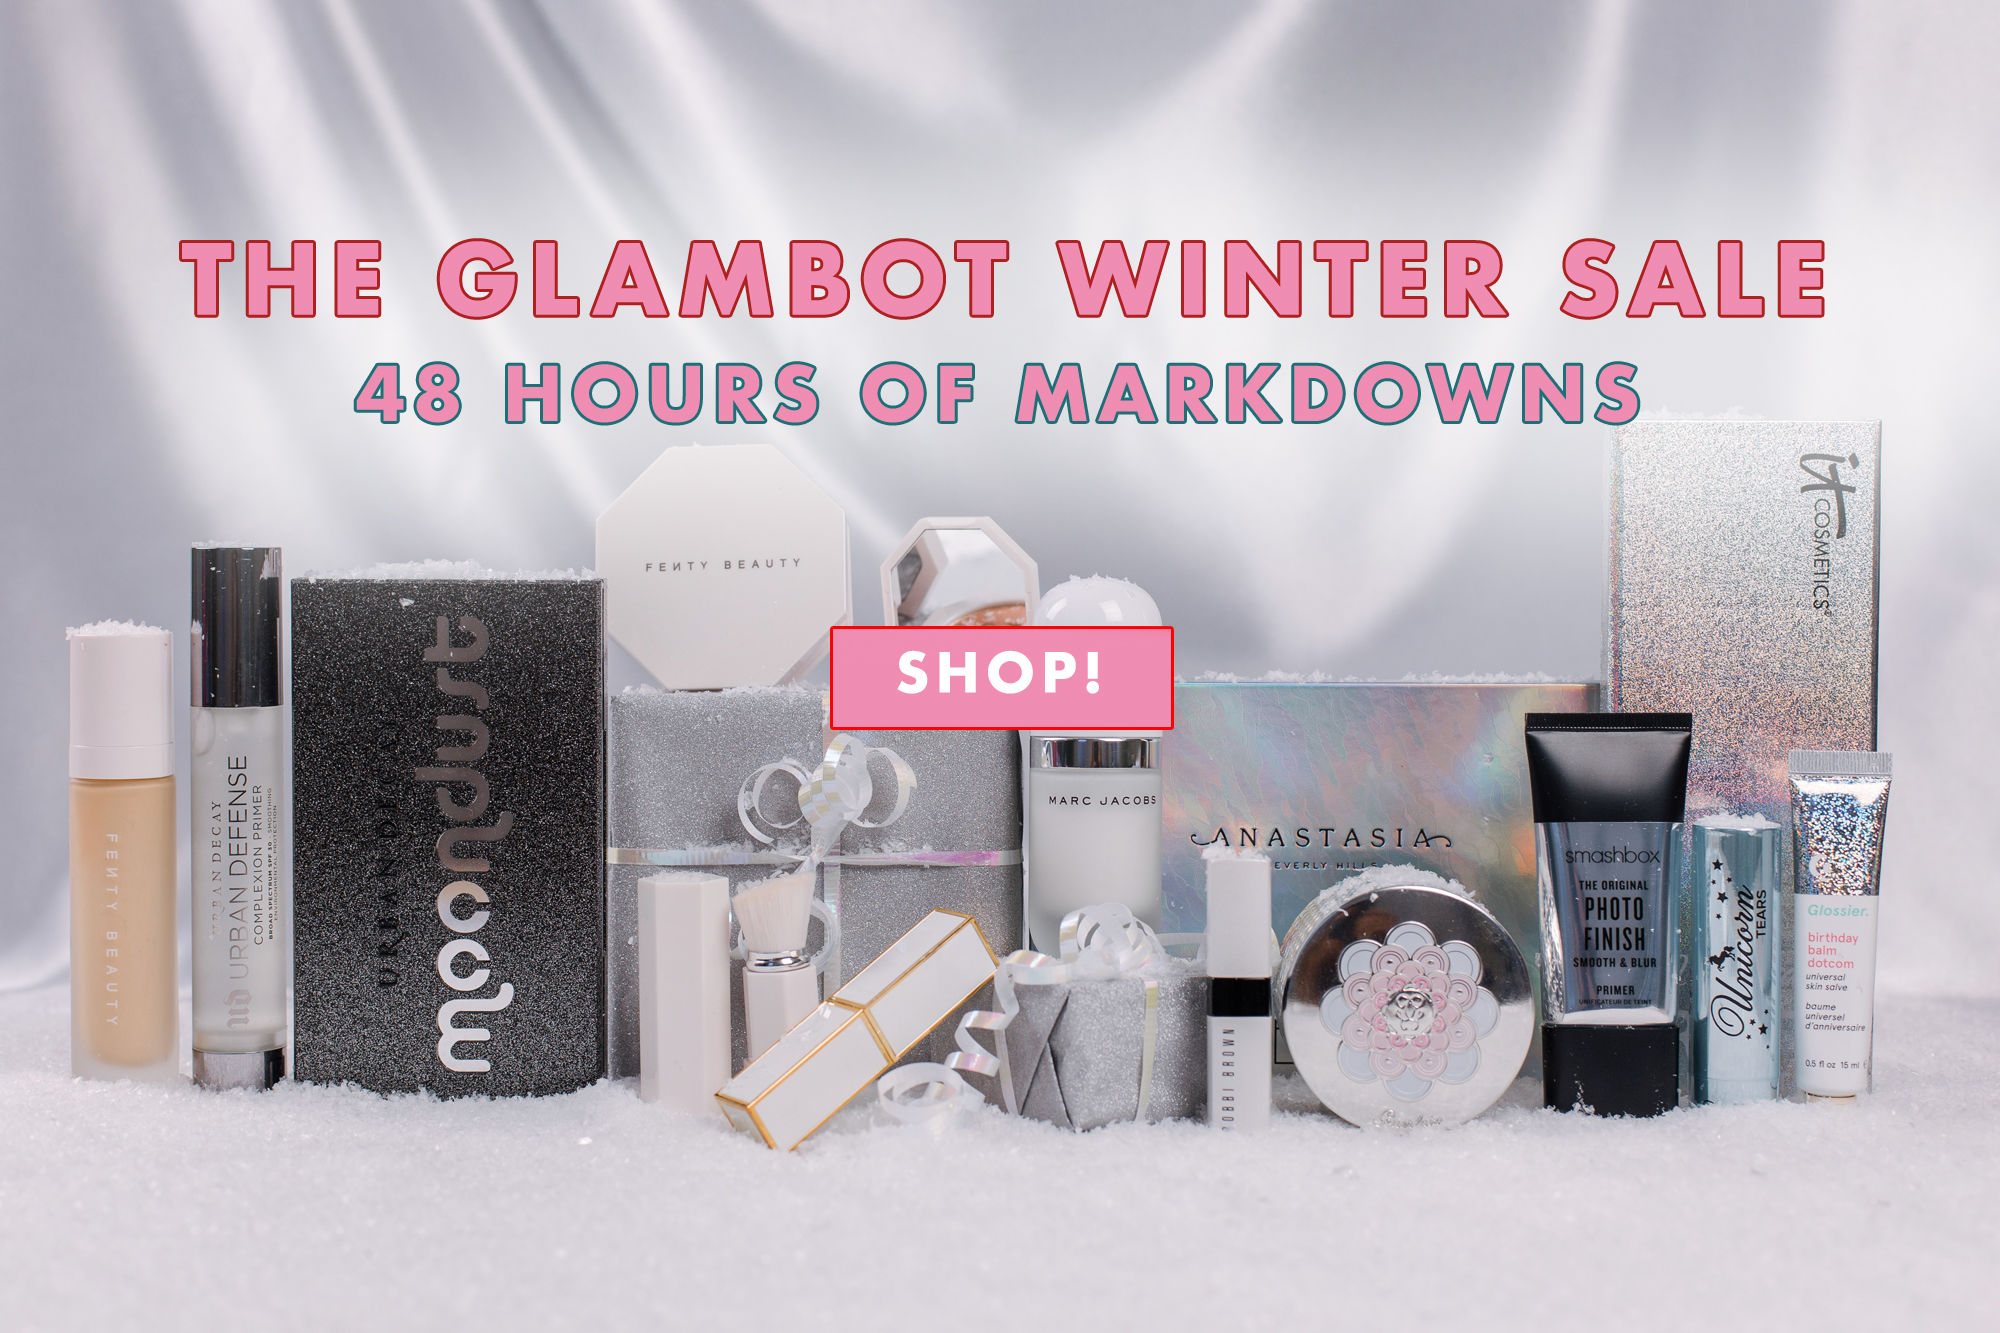 2000 items just marked down!